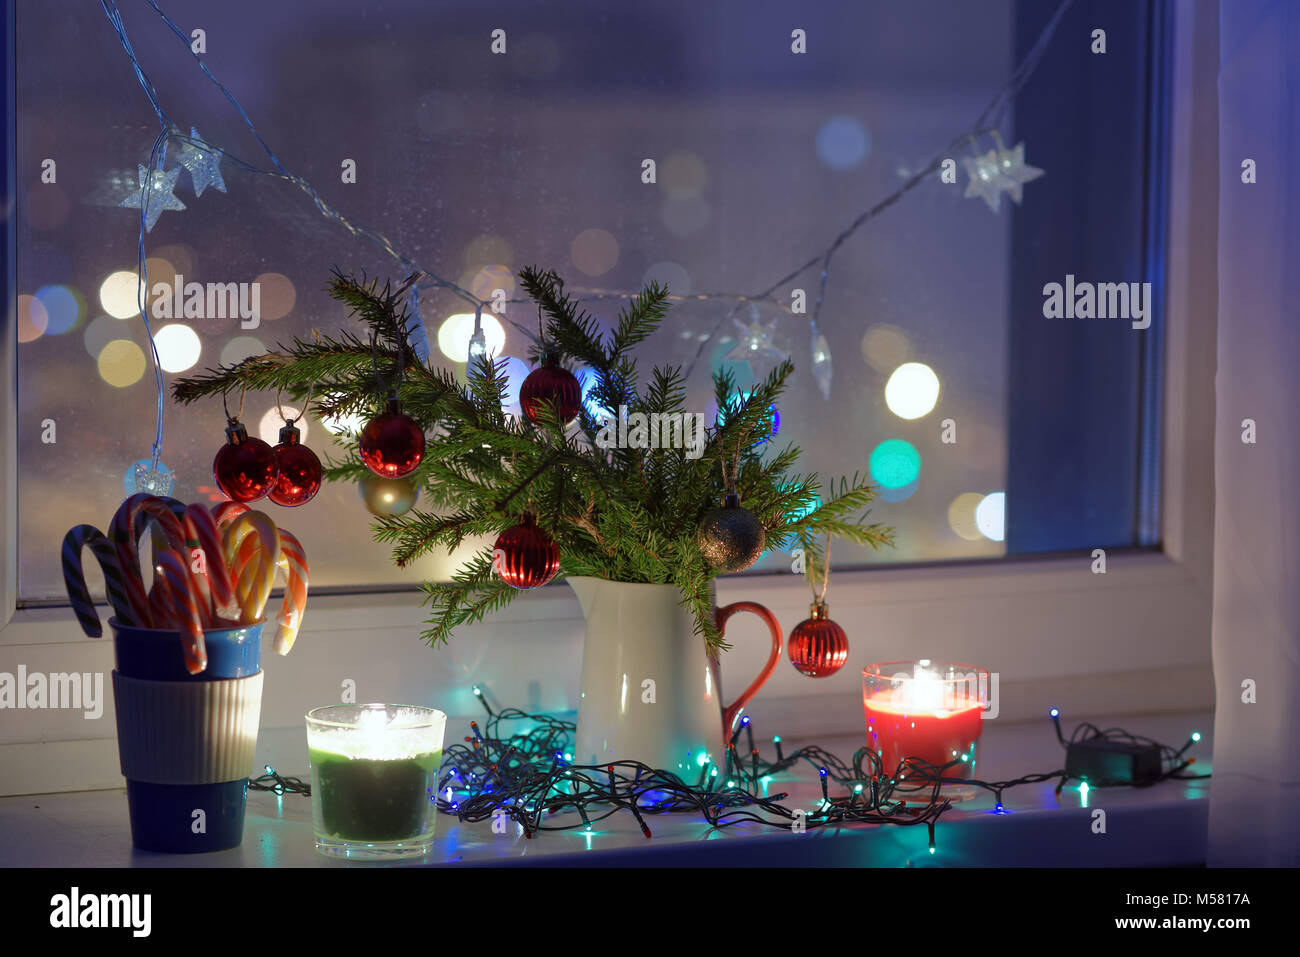 christmas decorations and candles on a window sill